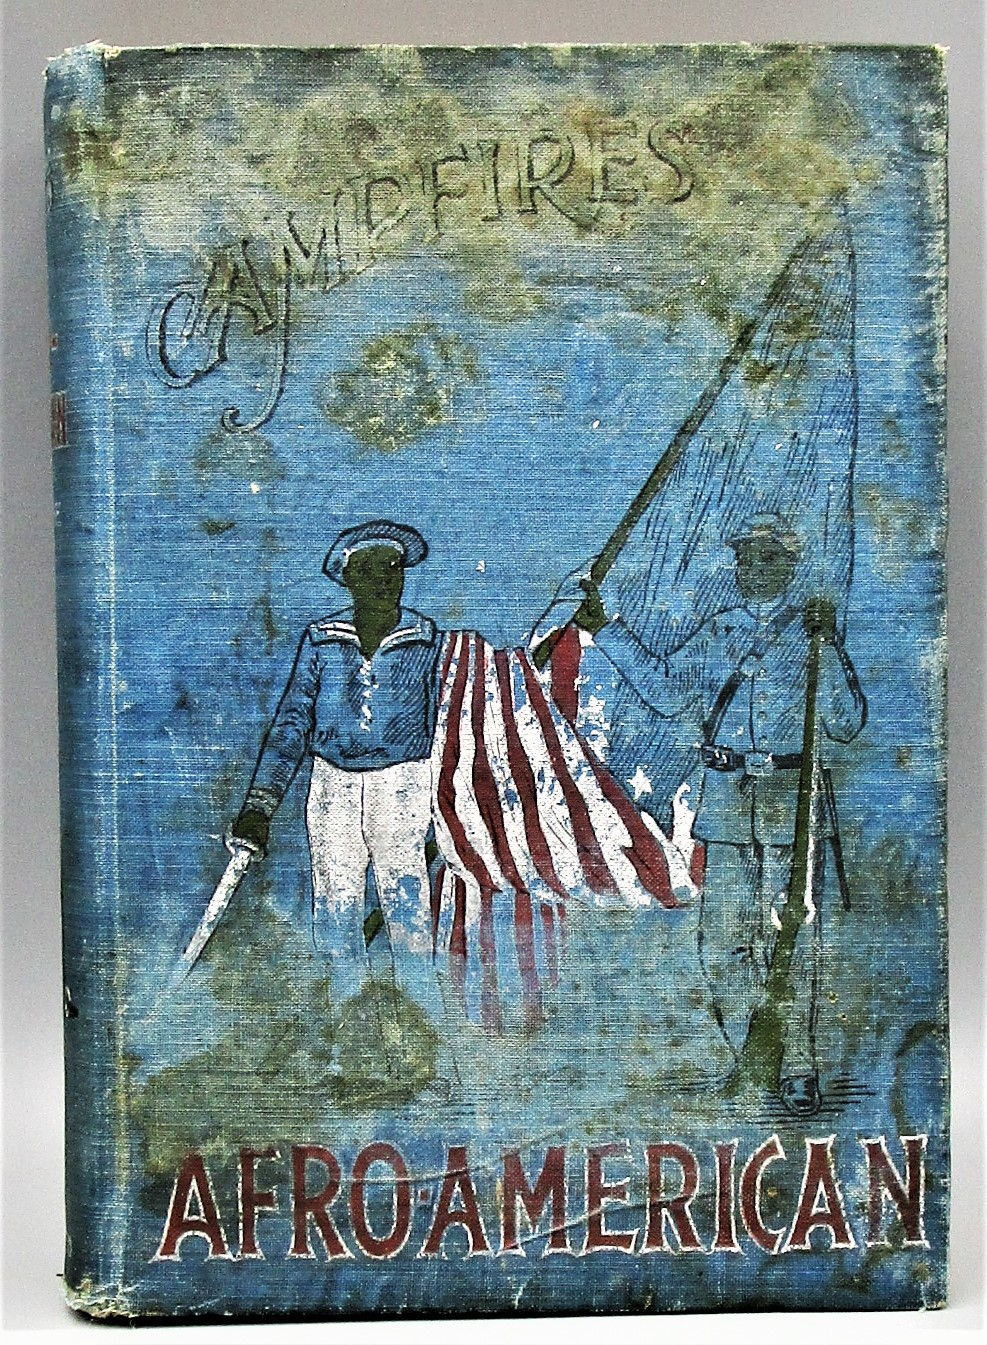 CAMPFIRES OF THE AFRO-AMERICAN, by Jas. M. Guthrie - 1899 [1st Ed]